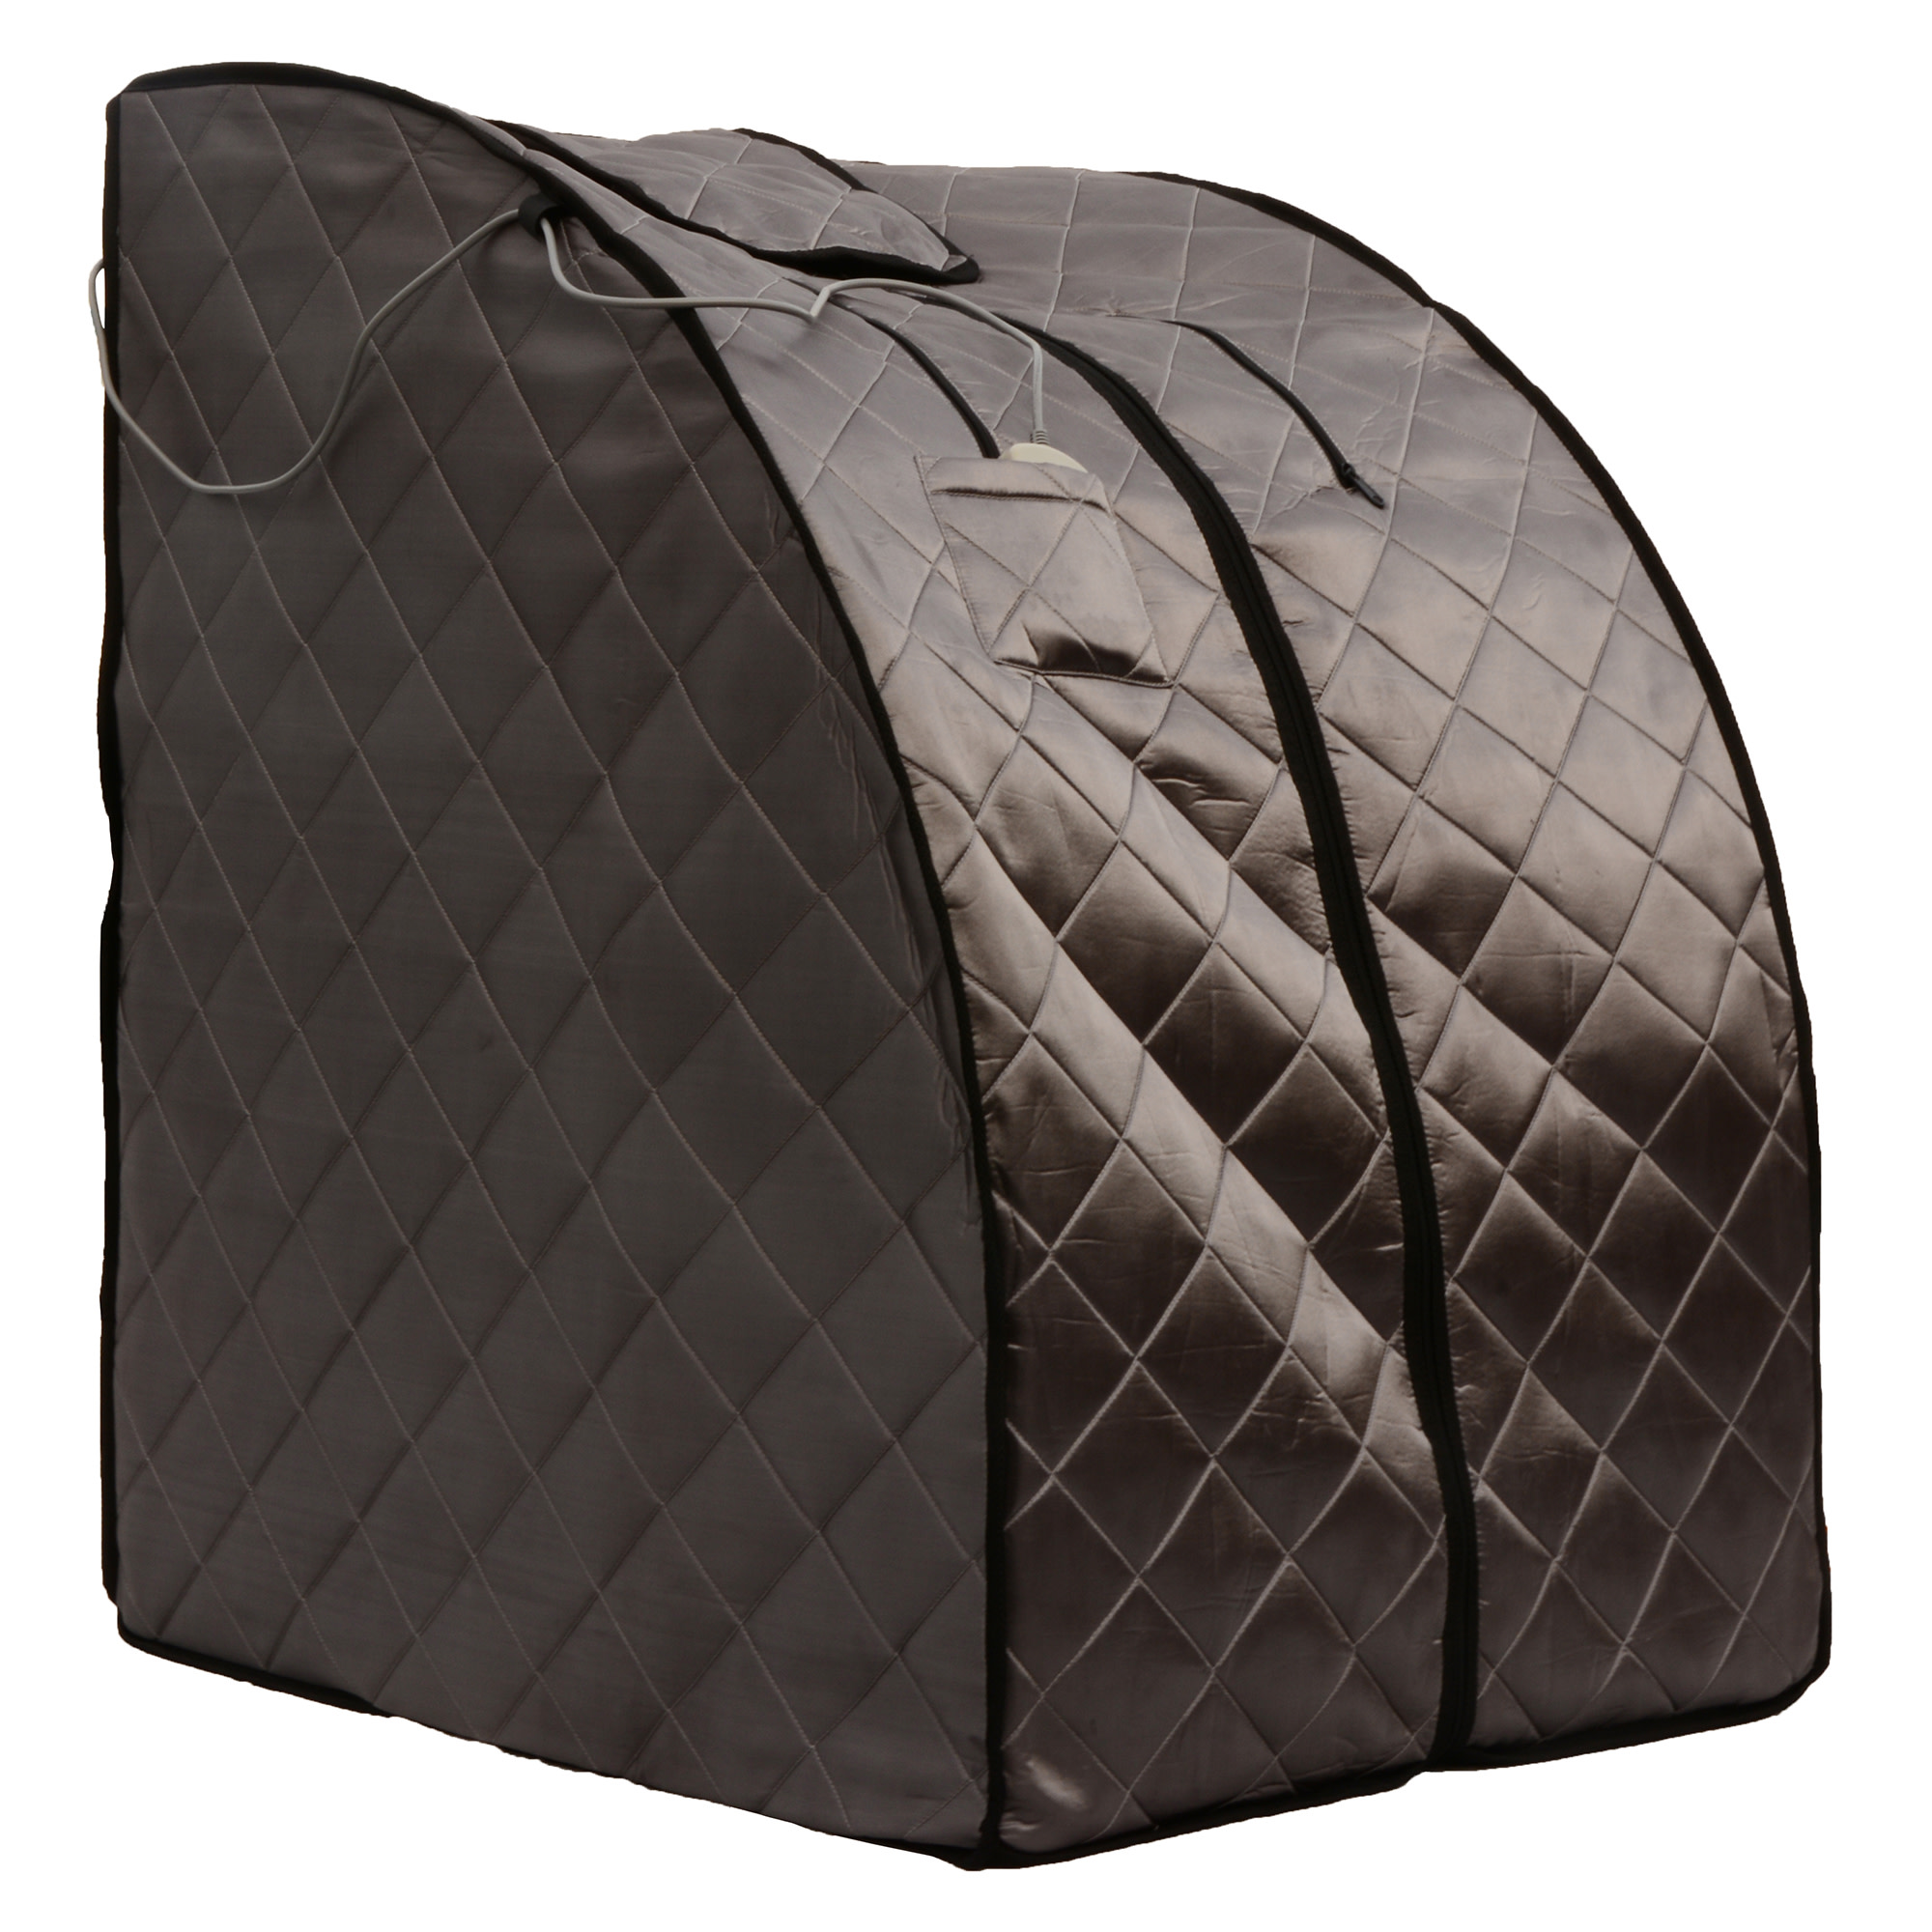 Radiant Saunas Radiant Saunas Rejuvinator Portable Personal Sauna with FAR Infrared Carbon Panels, Heated Floor Pad, Canvas Chair